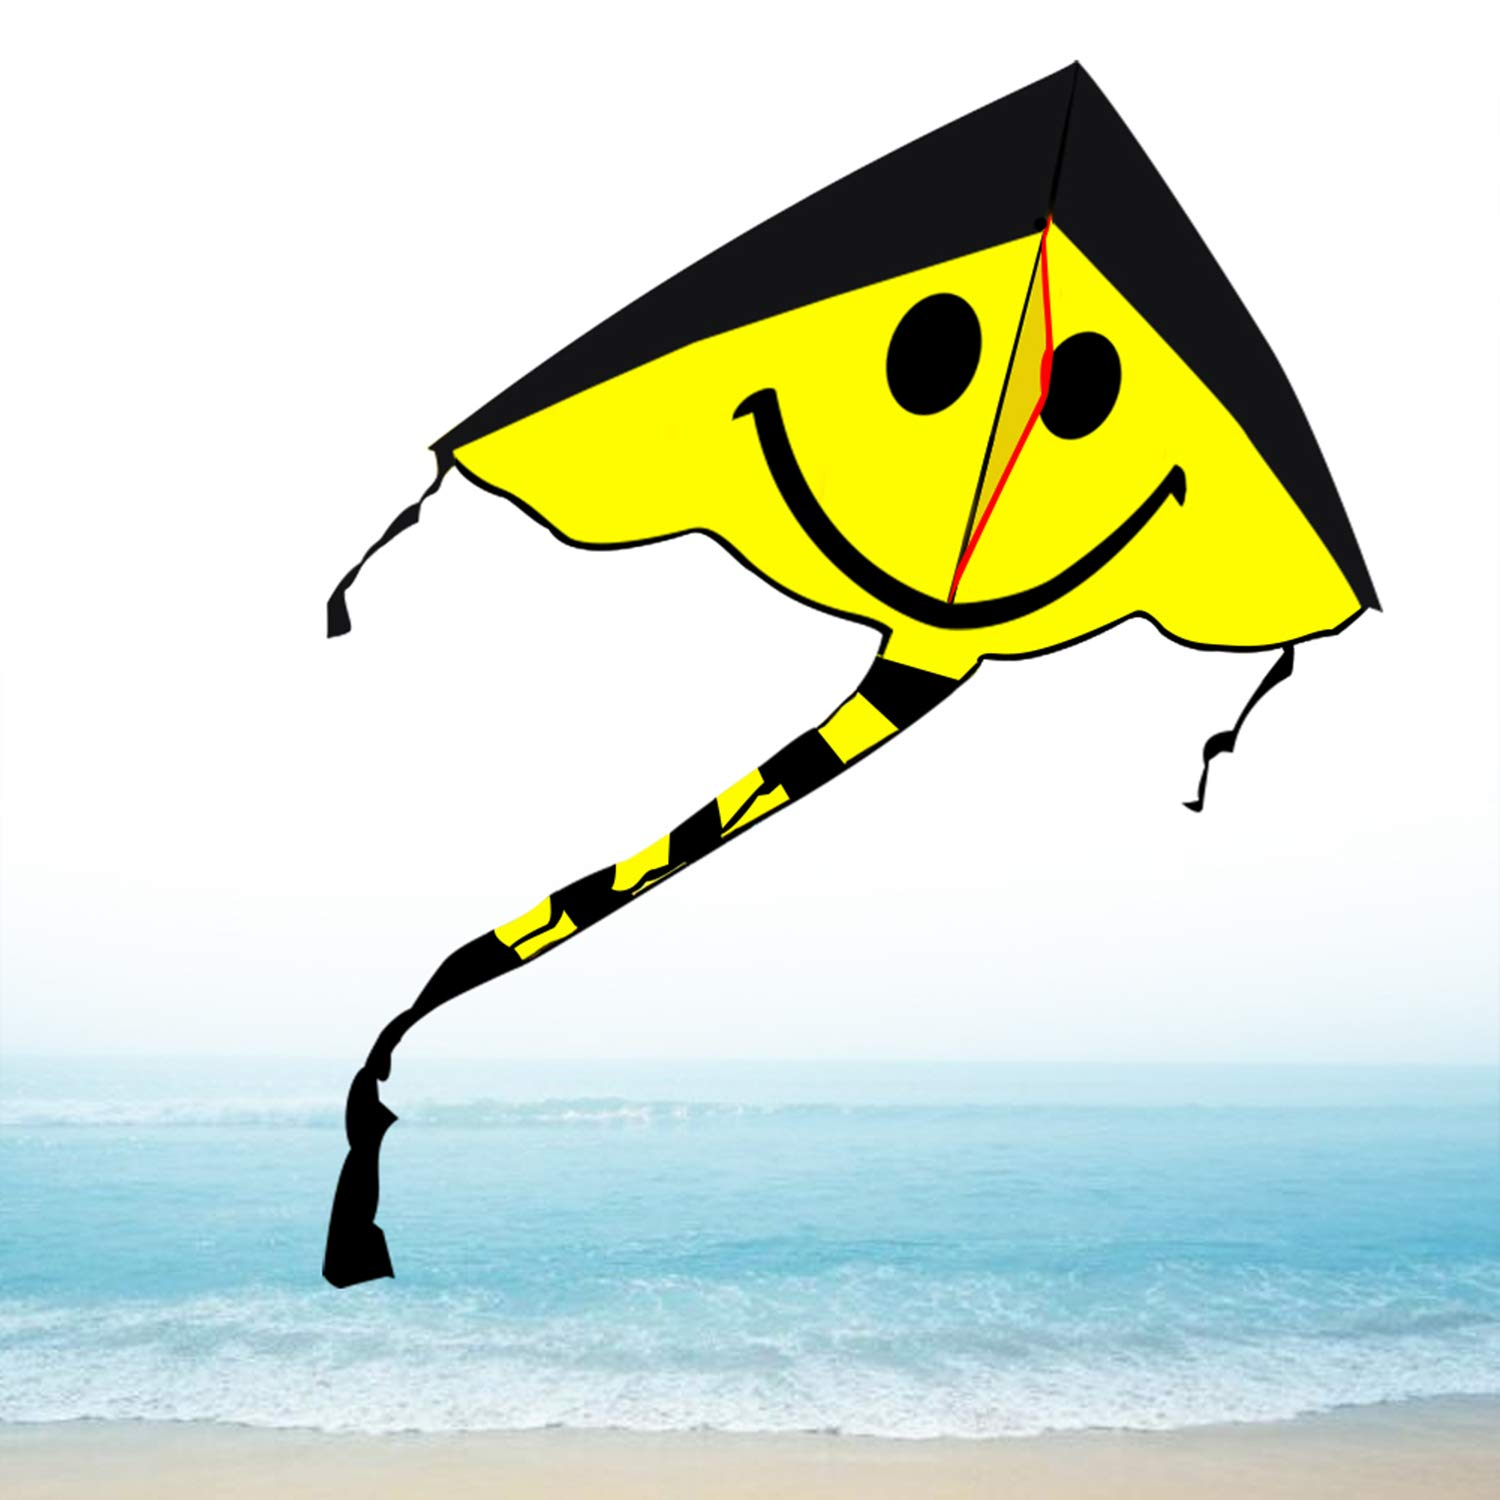 Smiling Kite Perfect Kites for Kids Boys Girls Toddlers Under 10 Easy to Fly for Beach Park Lawn Outdoor Fun, Best Kites Gifts Easy to Assemble